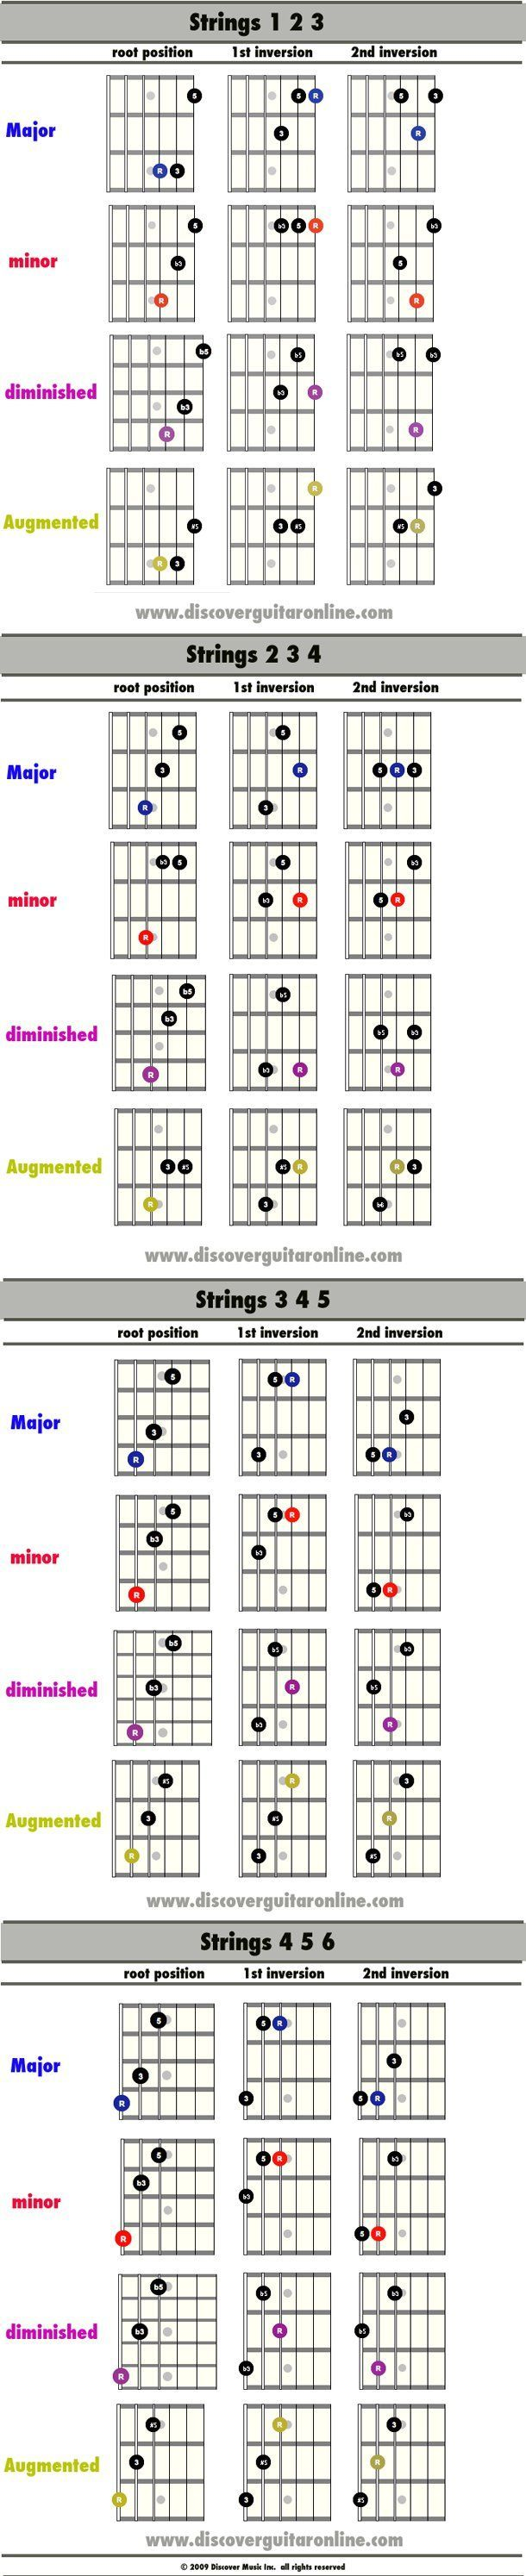 Best way to learn music theory (guitar)? | Yahoo Answers